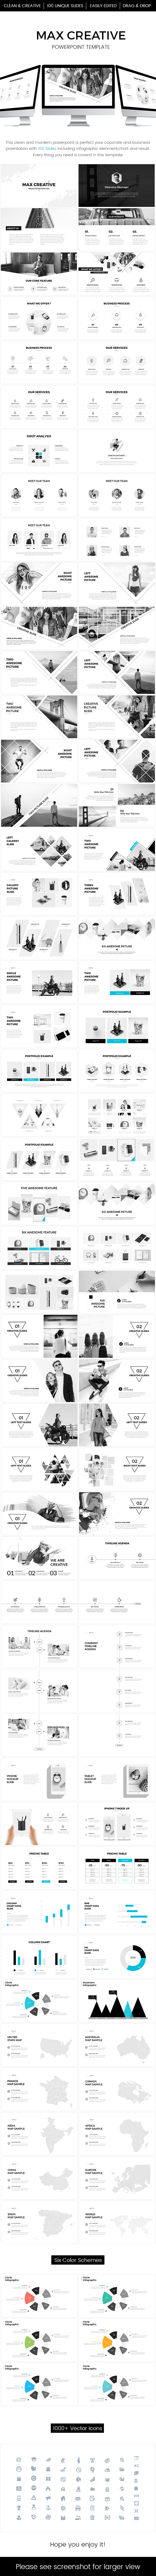 Max Creative Powerpoint Template (PowerPoint Templates)